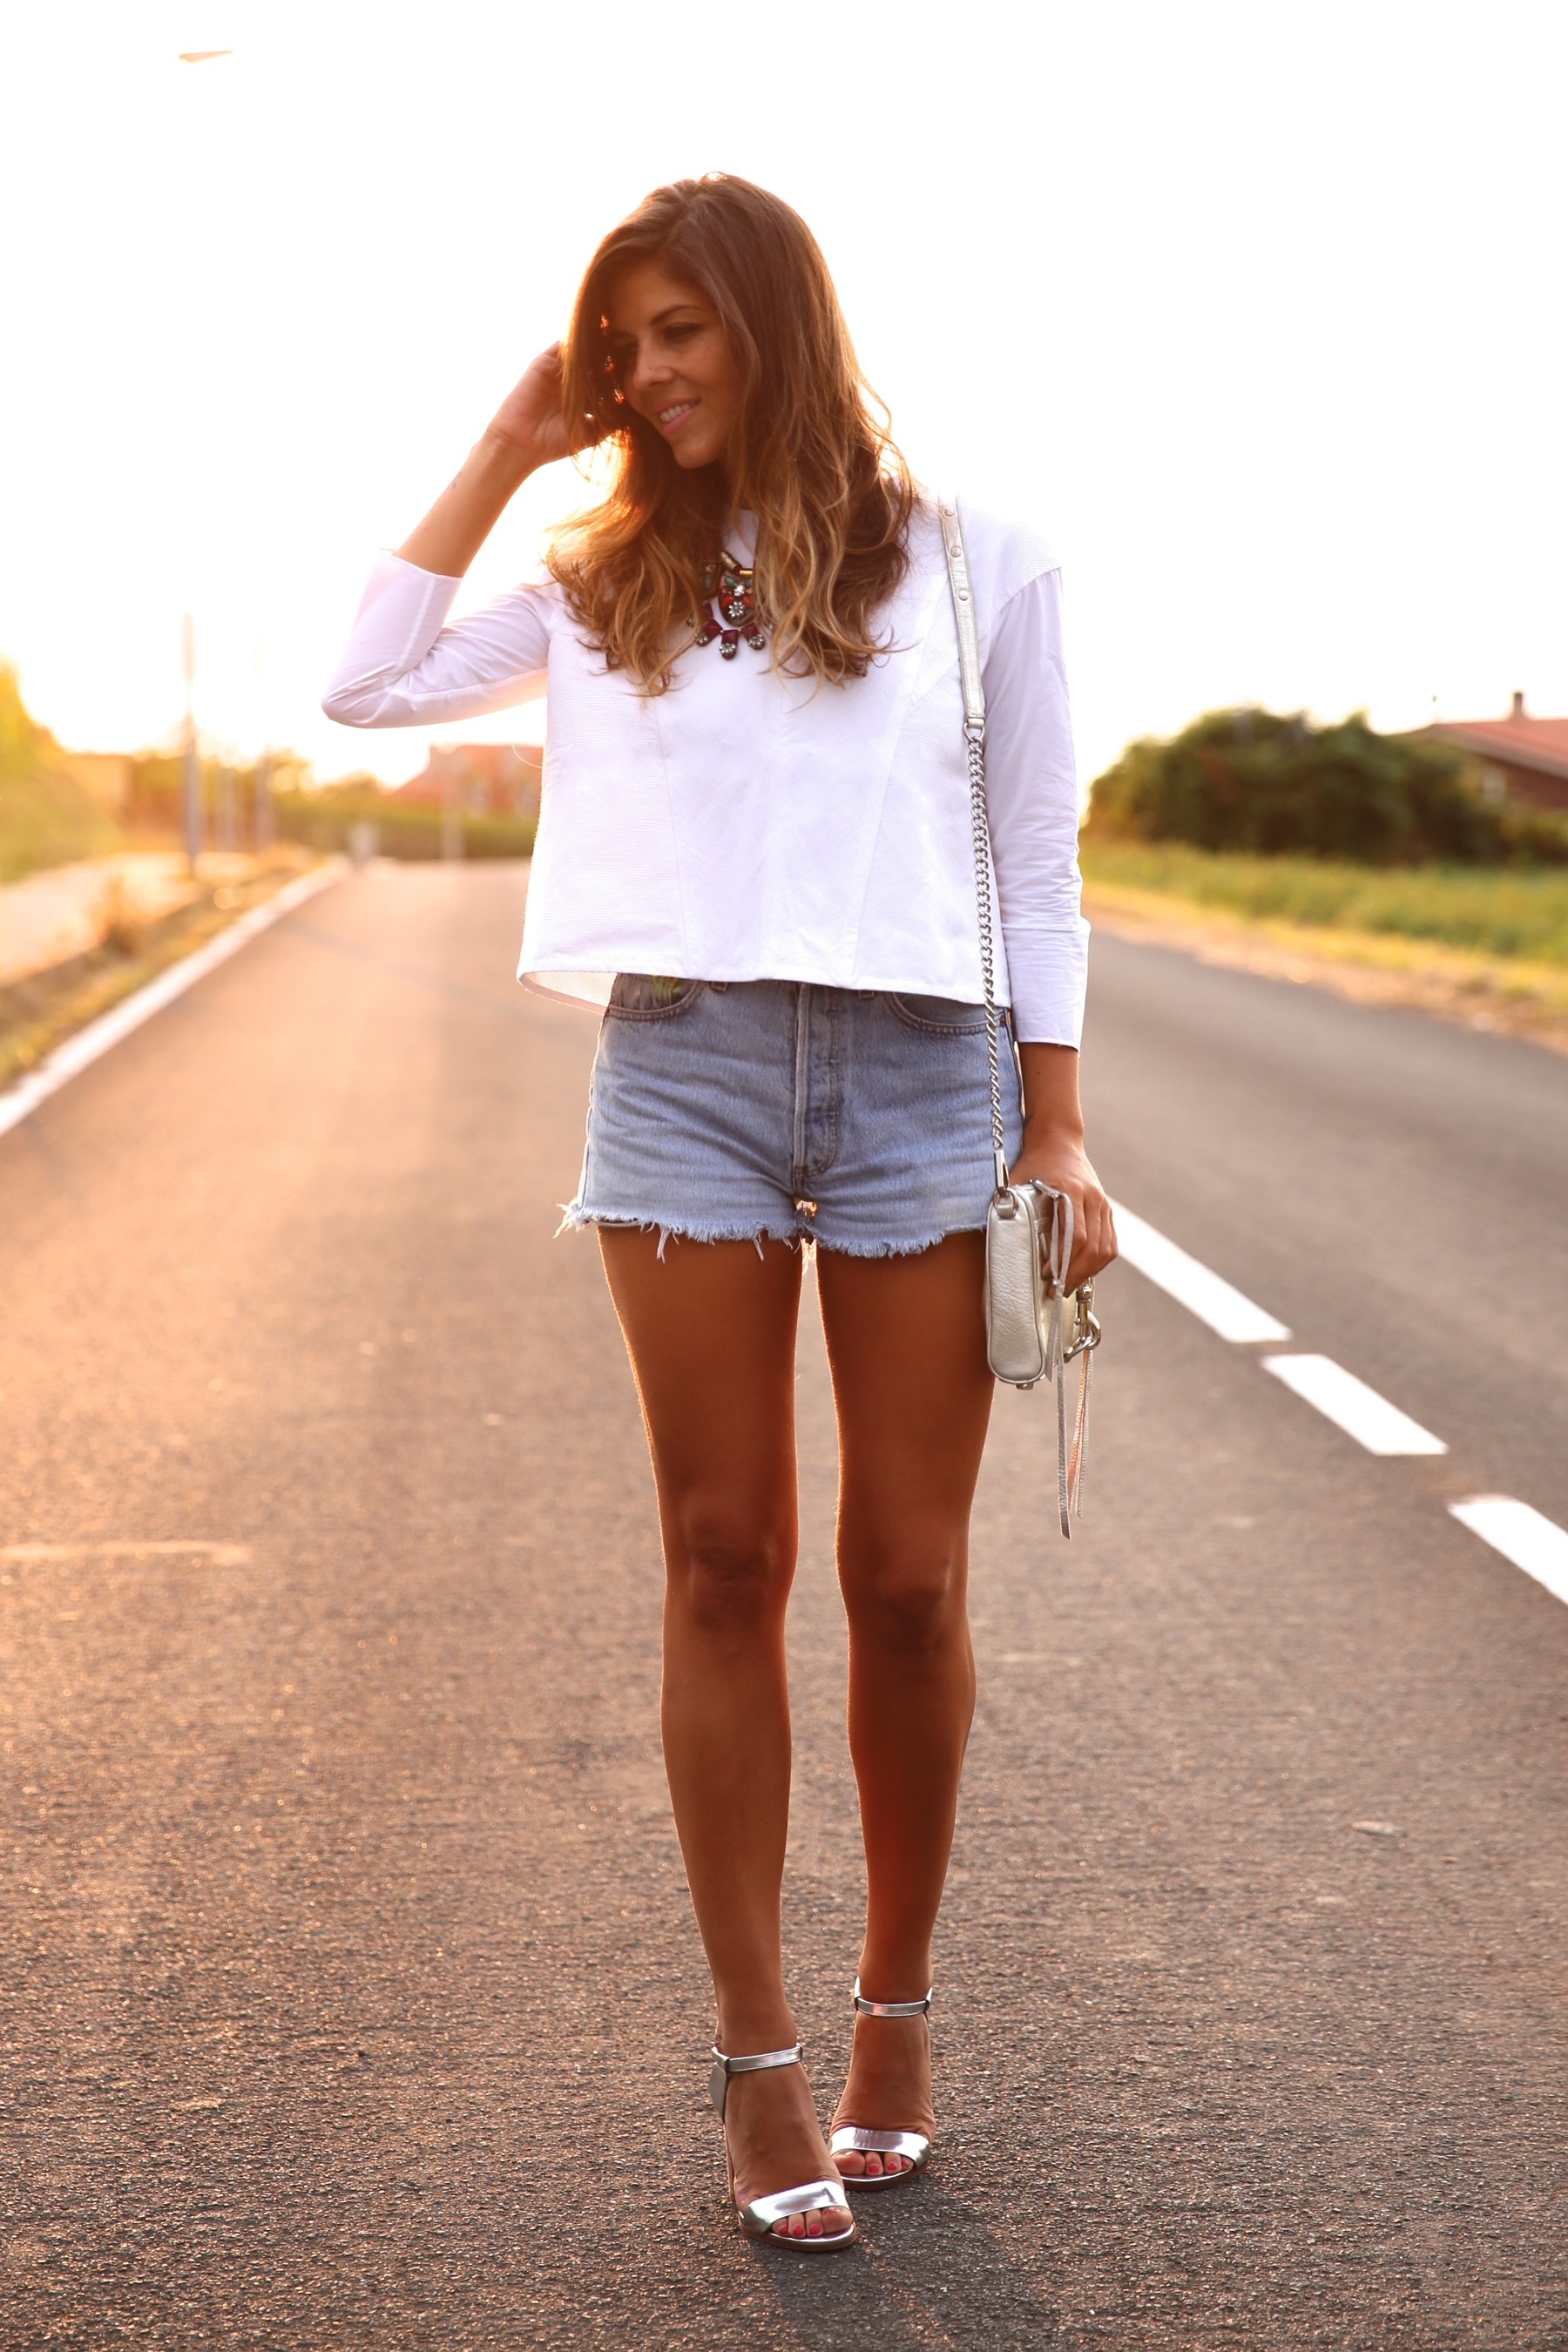 trendy_taste-look-outfit-street_style-ootd-blog-blogger-fashion_spain-moda_españa-coach-silver_sandals-sandalias_plata-white_top-top_blanco-levi's-denim_shorts-shorts_vaqueros-16